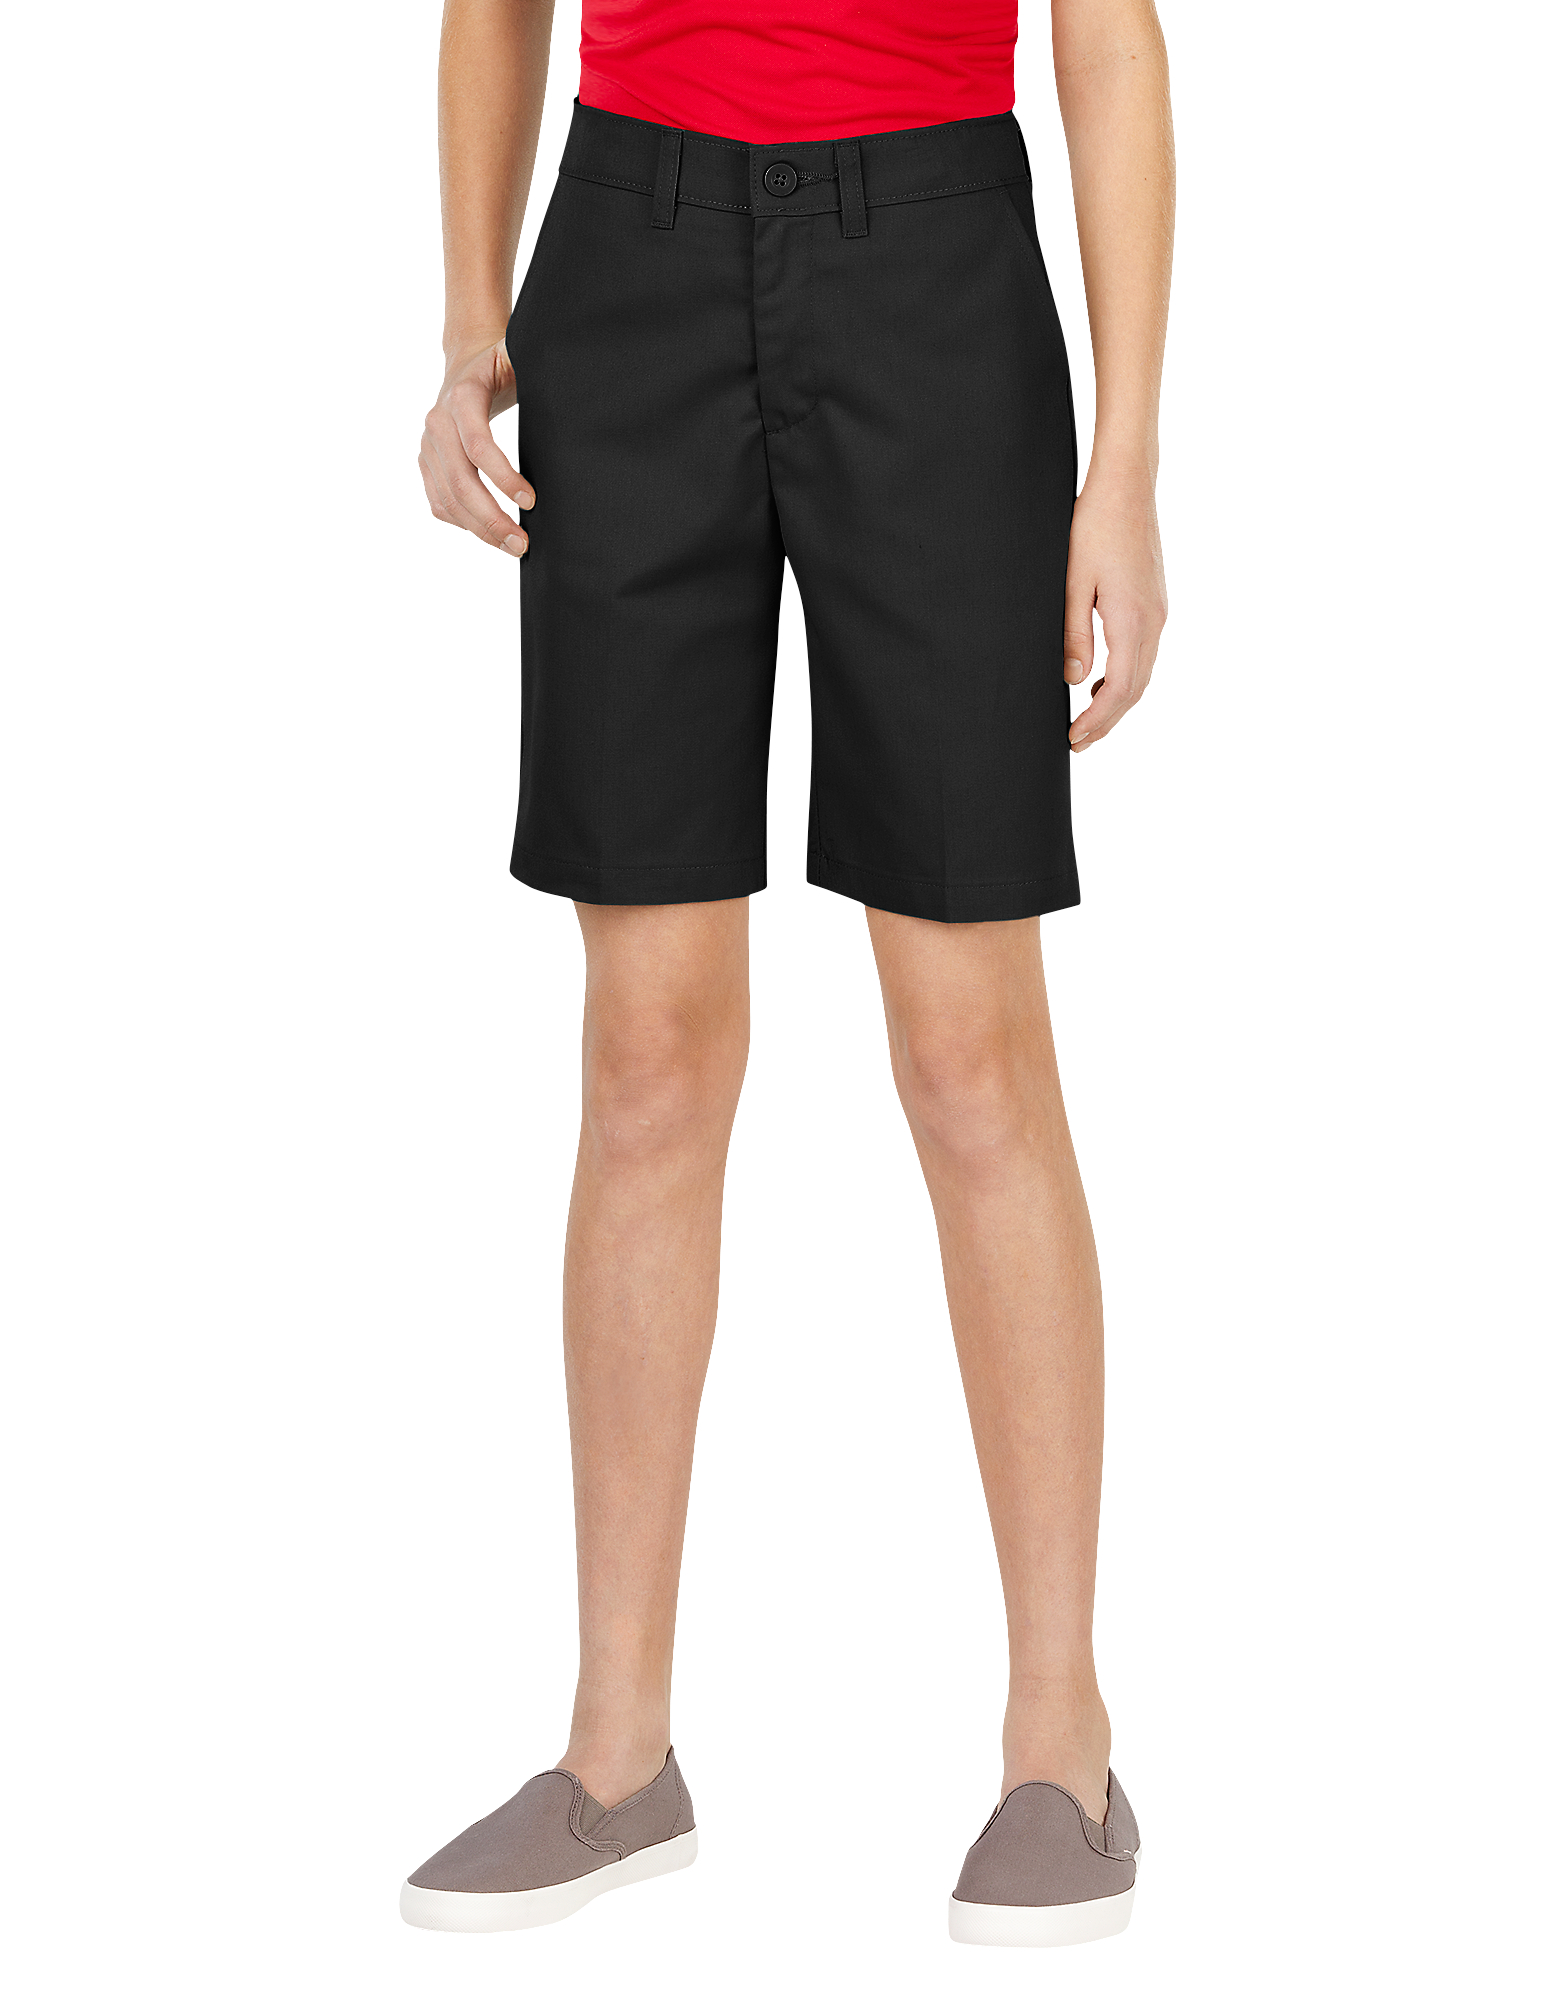 Girls' FlexWaist® Slim Fit Flat Front Shorts, 7-20 - Black (BK)